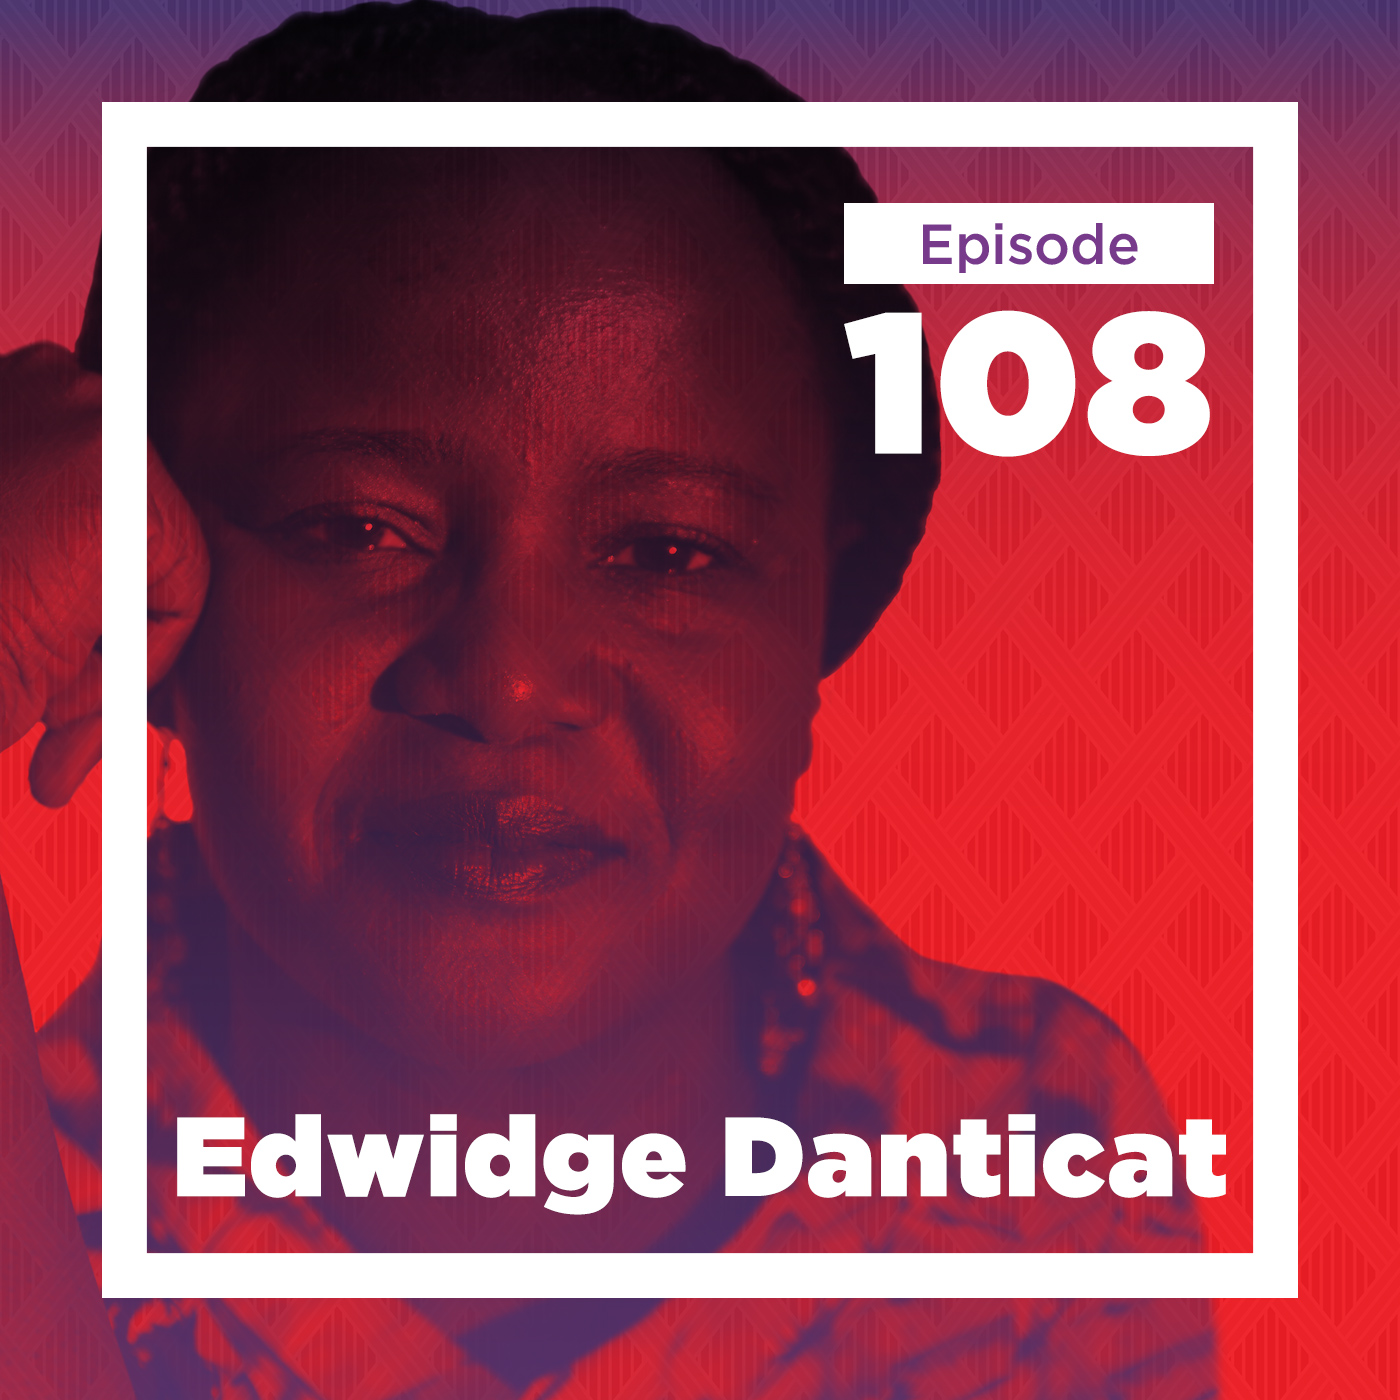 Edwidge Danticat on Haitian Art and Literature